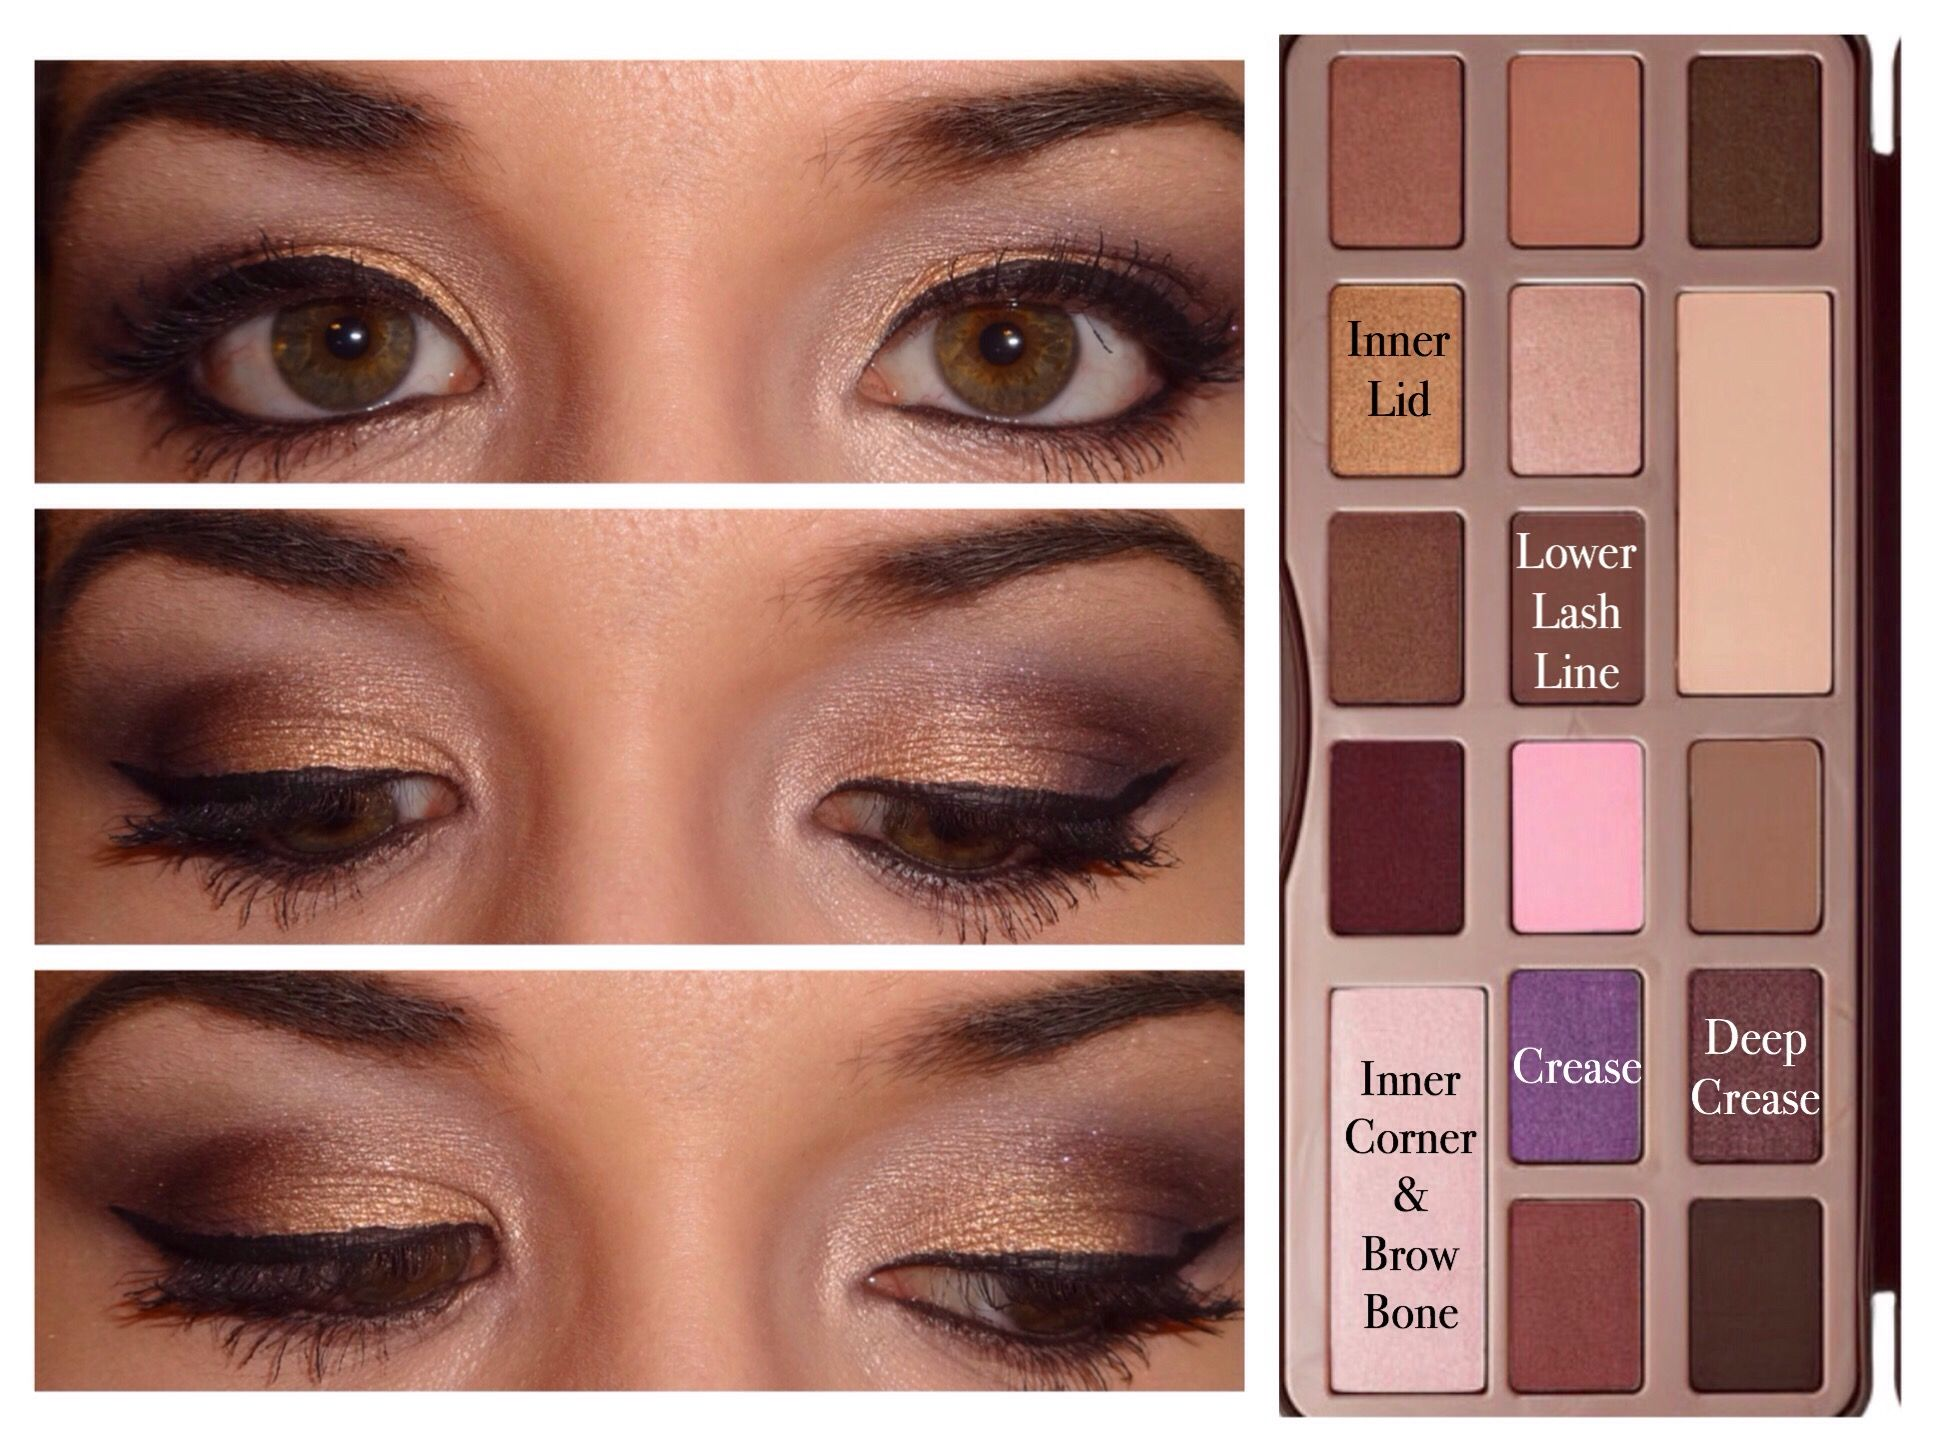 5 styles for the chocolate bar palette | My Style | Pinterest ...